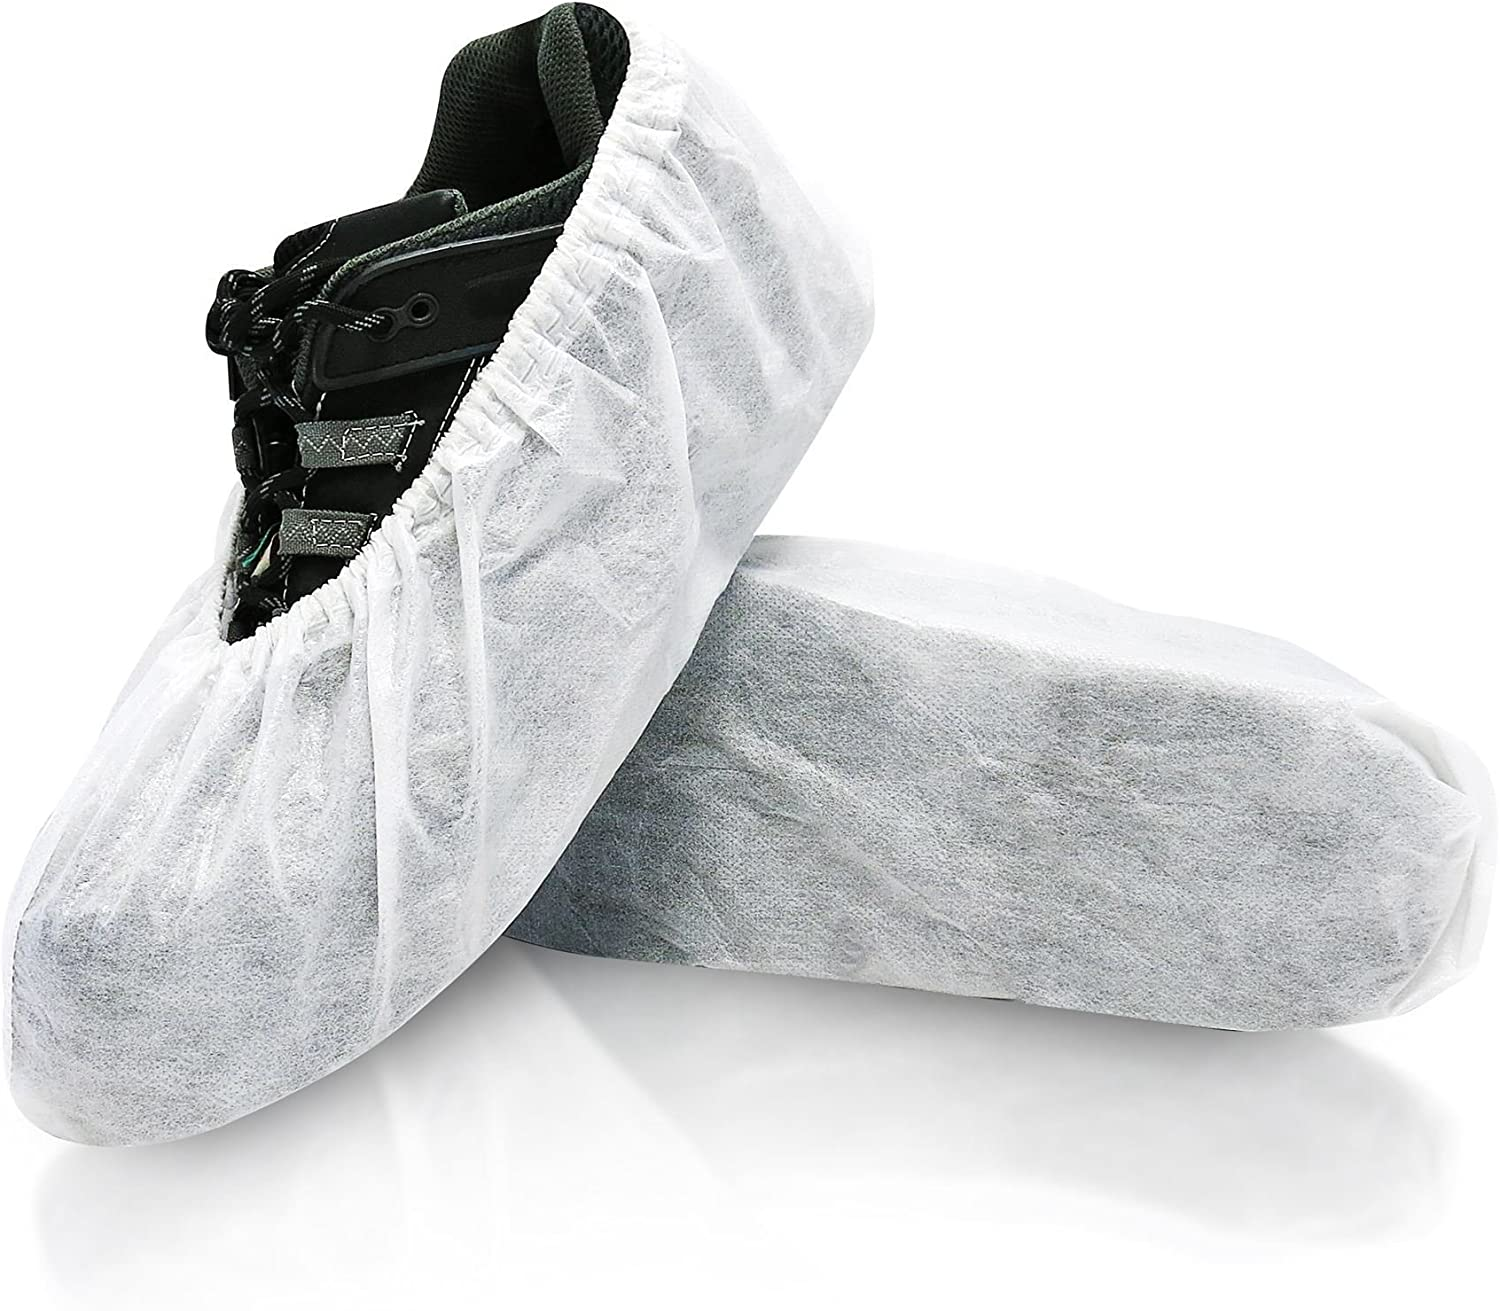 blueeMed SHS-1501-C Cosmic Disposable shoes Covers, Polypropylene and polyethylene Fabric, Universal, 6.89  x 16.54 , White (Pack of 300)